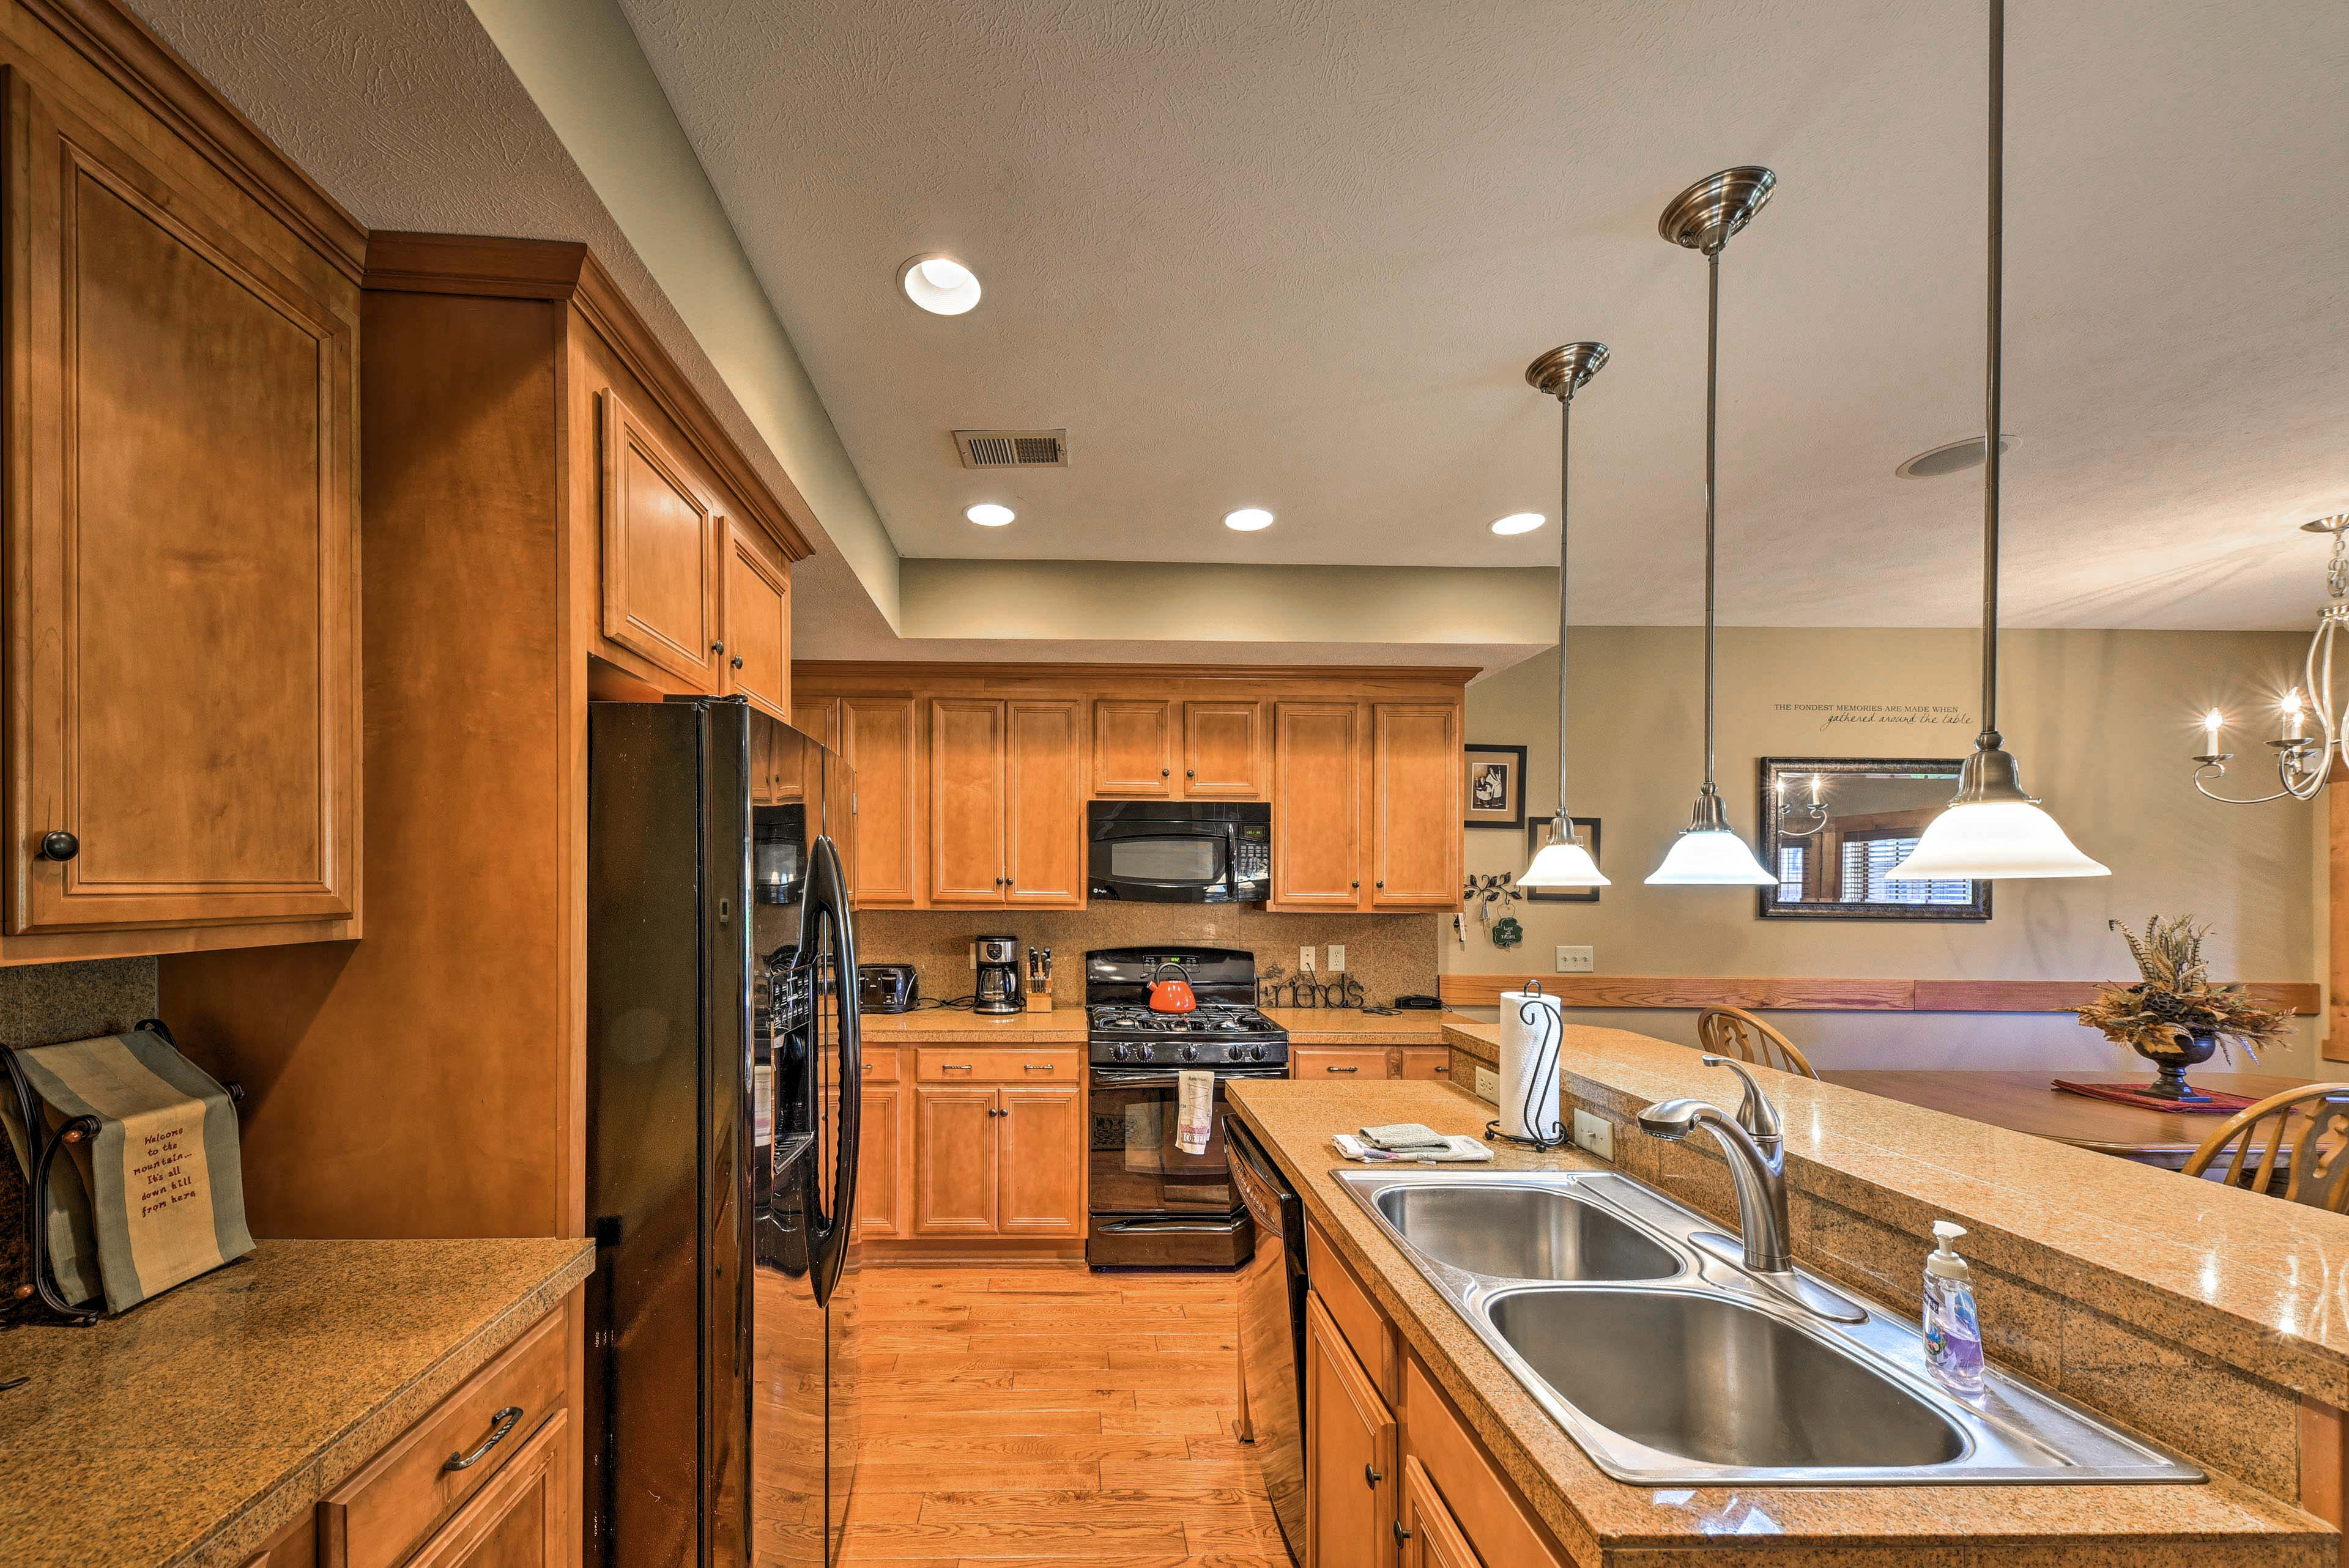 Whip up a delicious meal in the fully equipped kitchen with updated appliances.